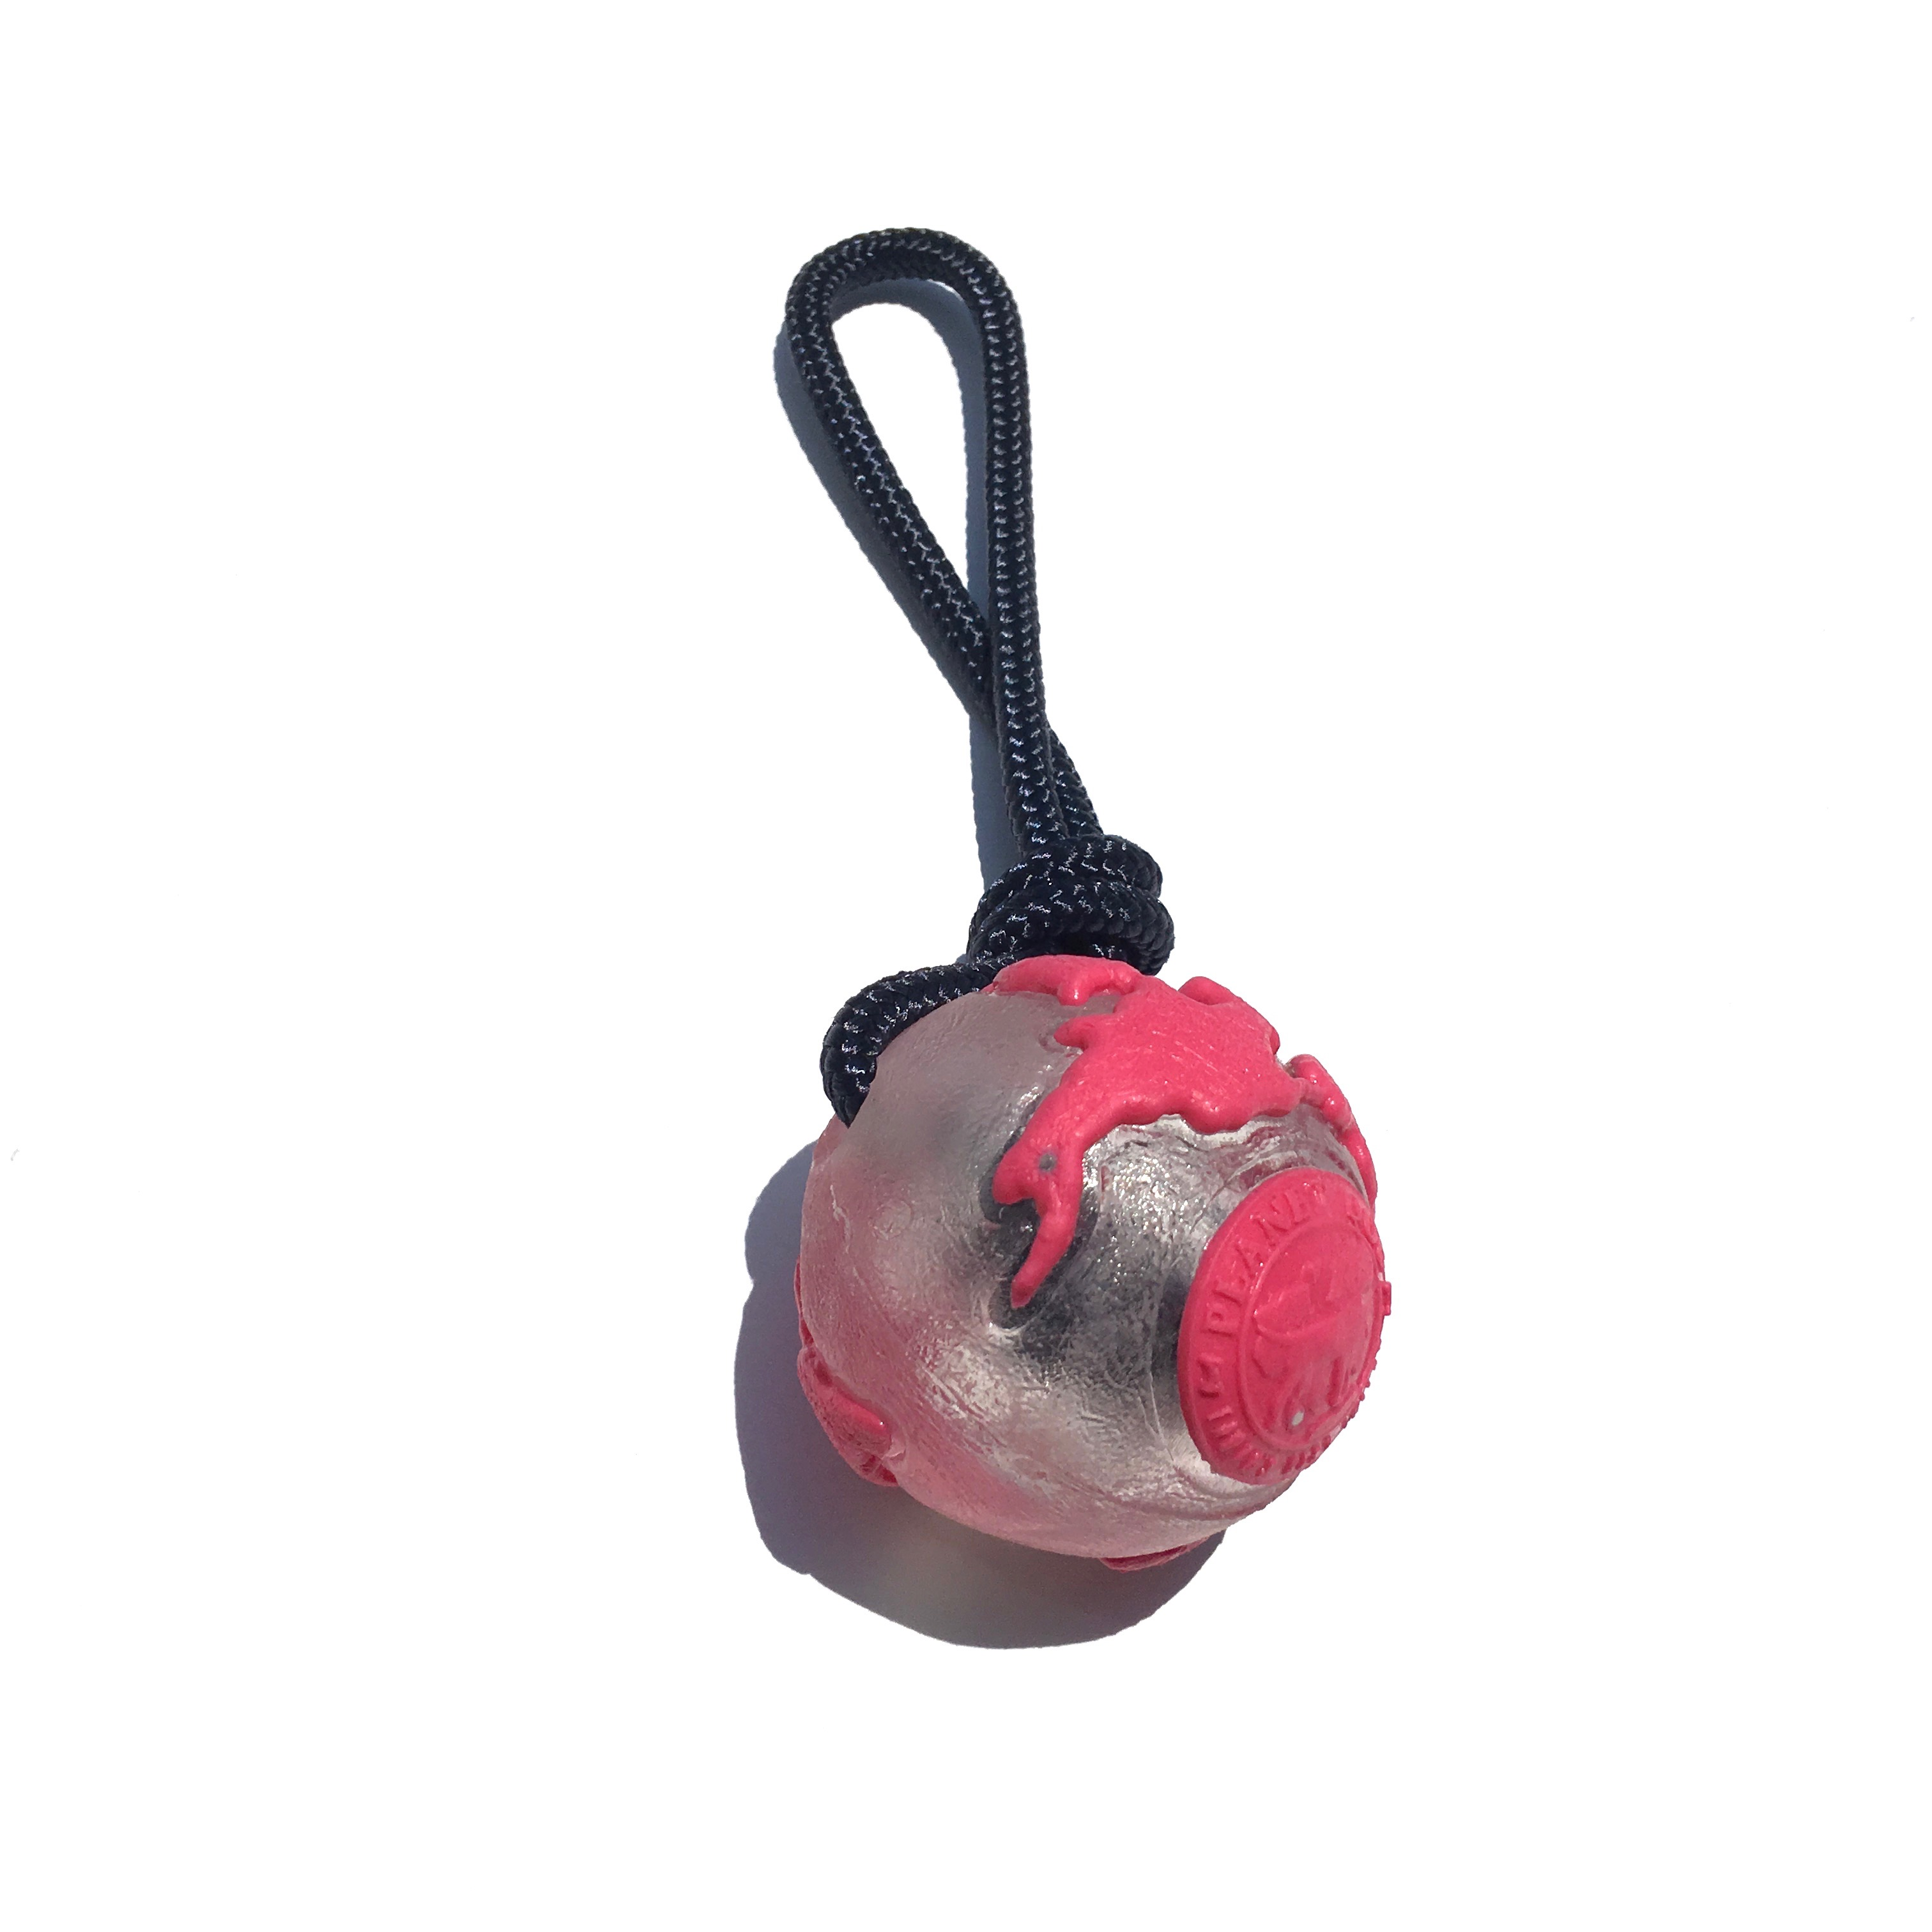 PLANET DOG Orbee-Tuff Ball with ROPE  プラネットドッグ オービータフ ボール ウィズ ロープ 限定色_d0217958_12211879.jpg